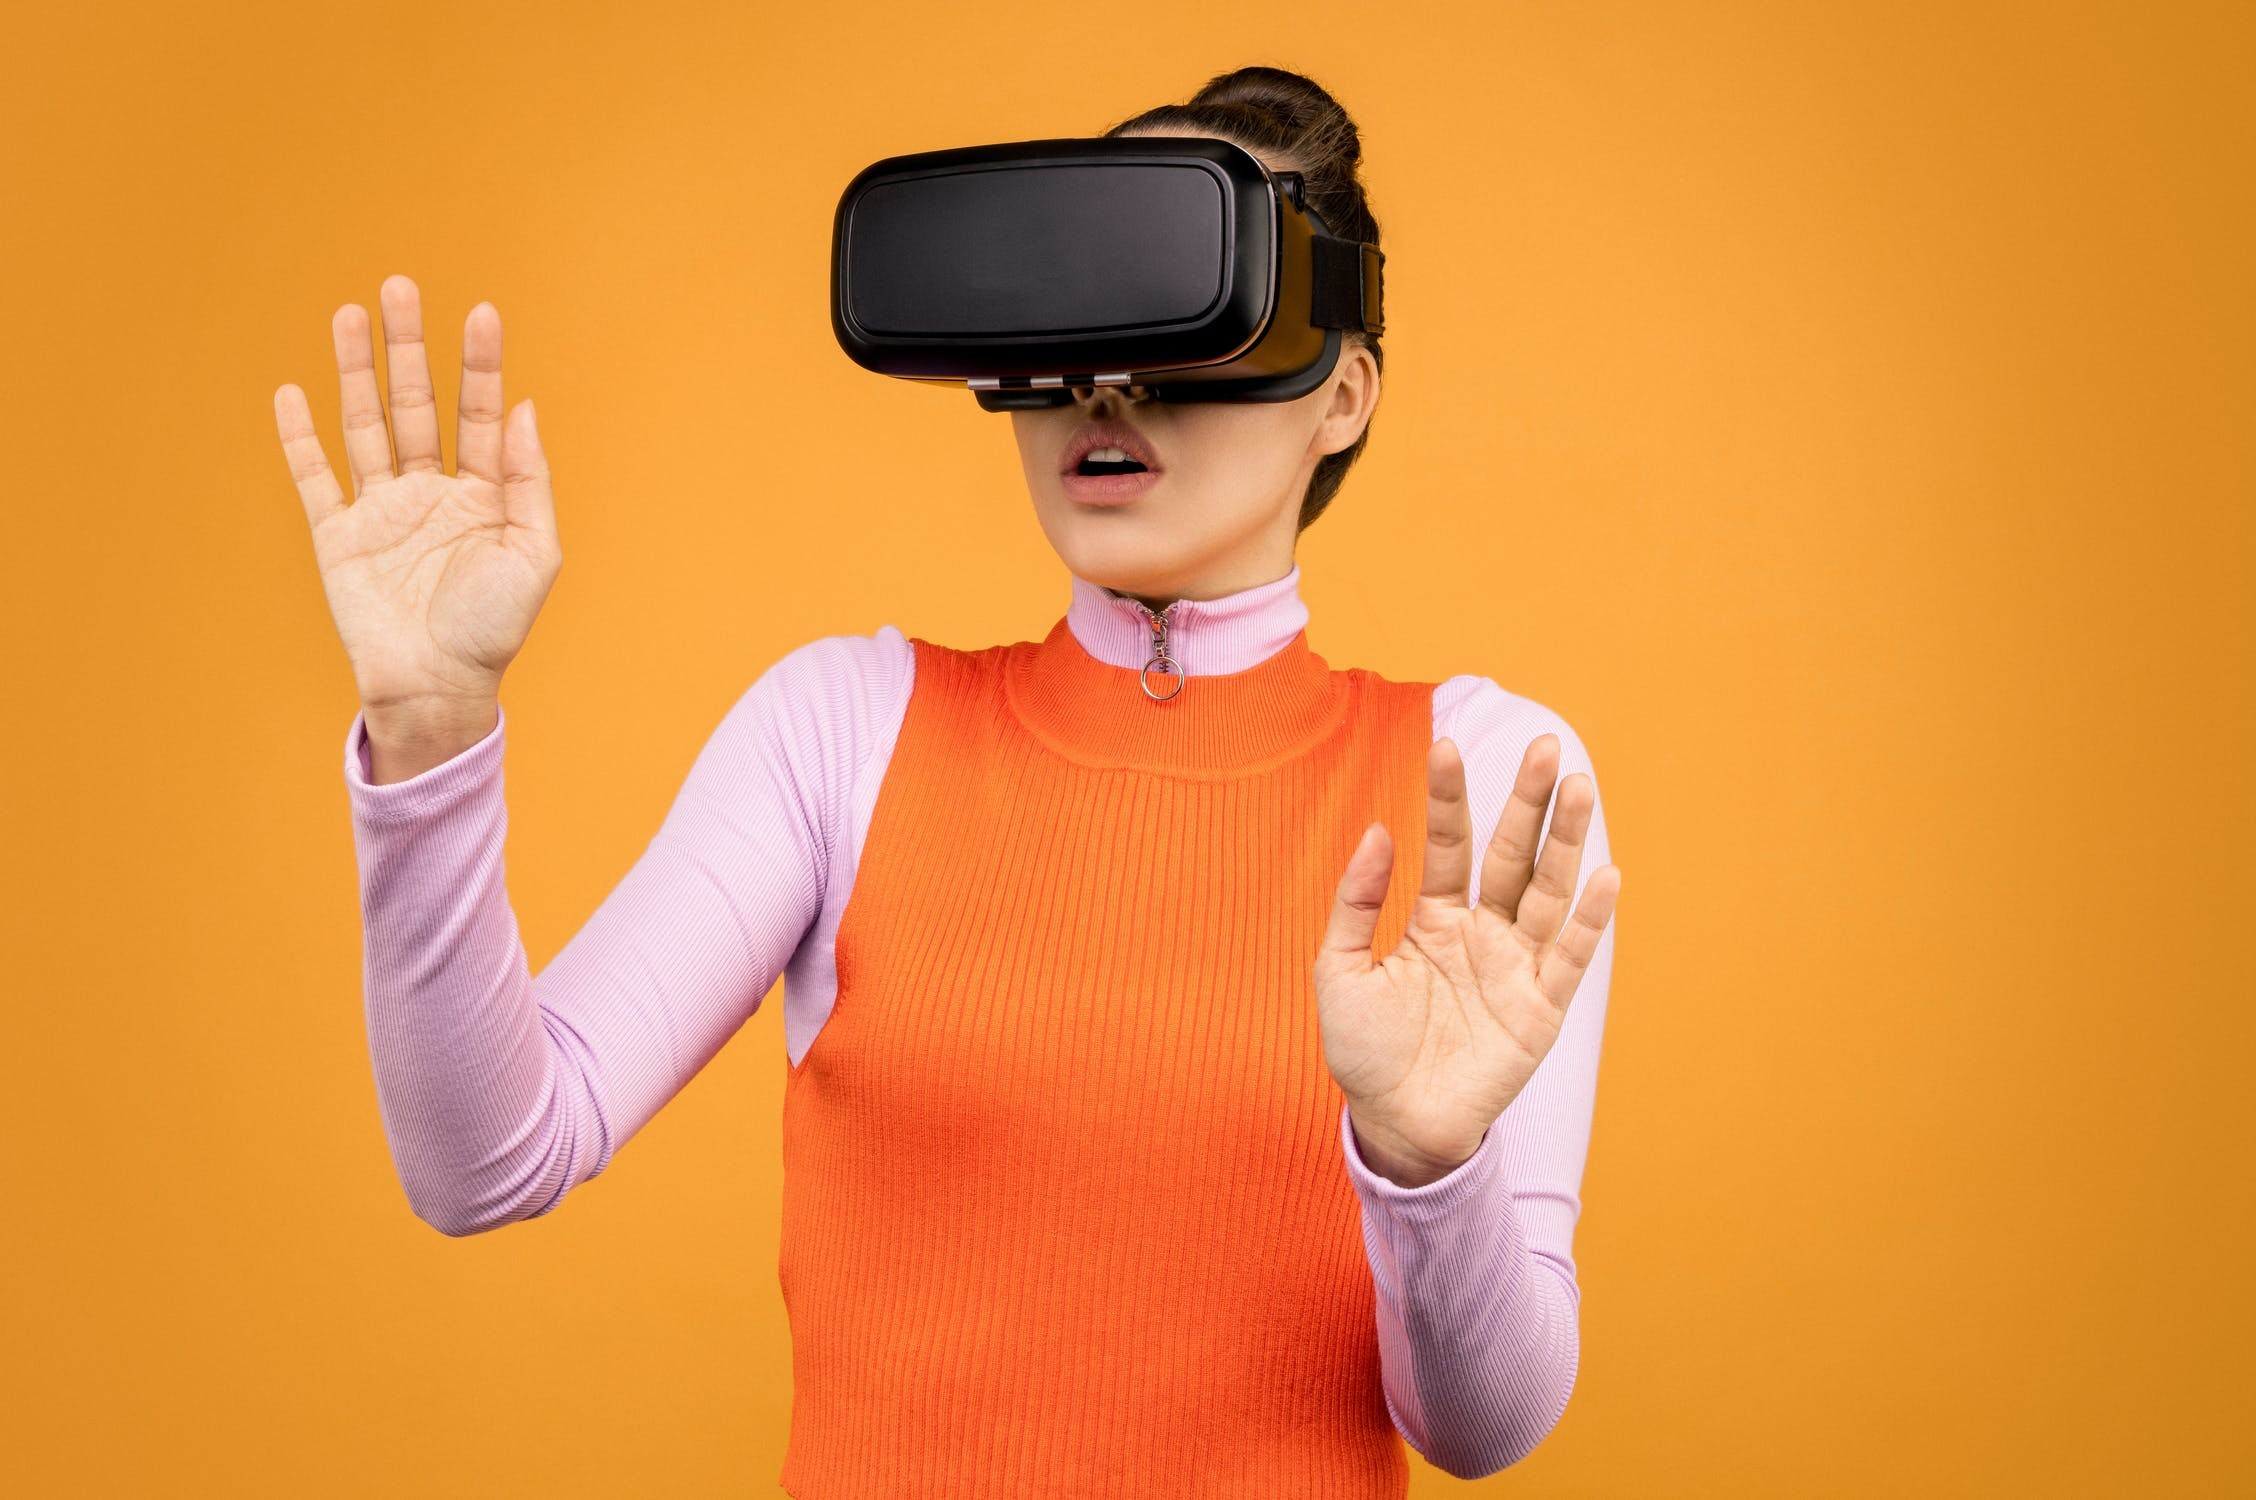 Is the future of gaming really going to be VR